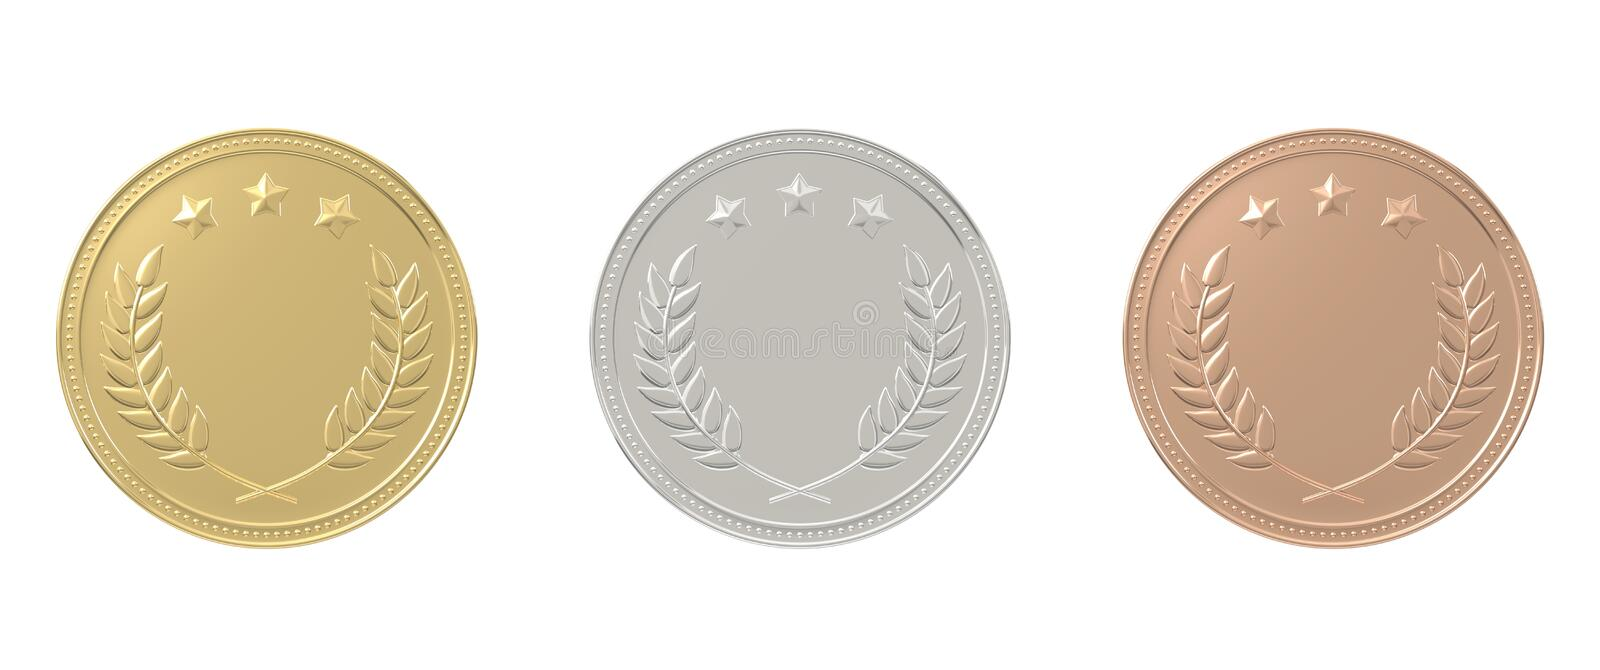 Gold, silver, bronze medals set. 1st, 2nd, 3rd place. Sports award, product ranking, best price, first place concept. Graphic design elements isolated on white stock image